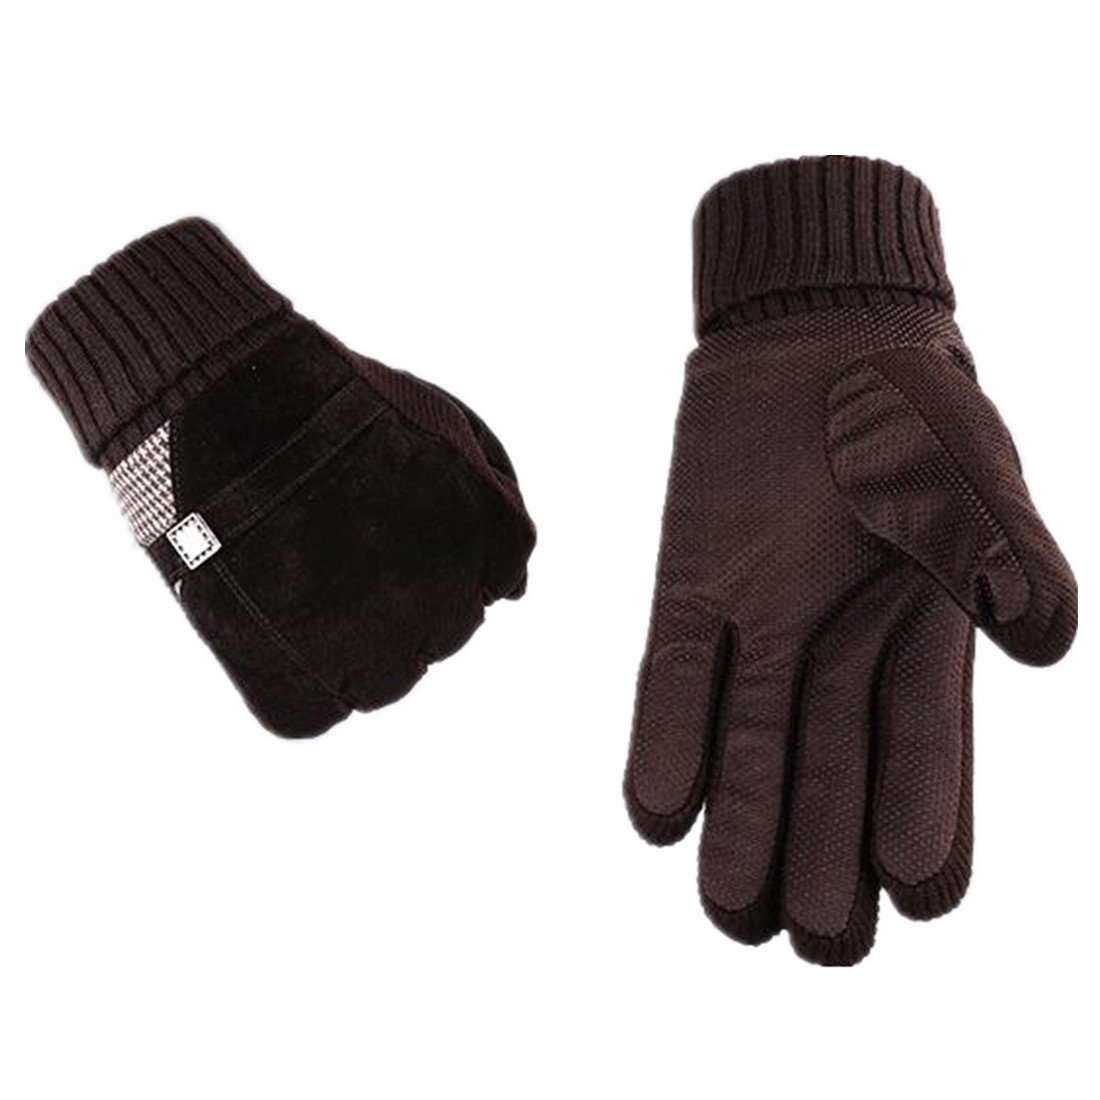 Yingniao Mens Suede leather Gloves Winter Warm Full Finger Motorcycle Cycling Gloves